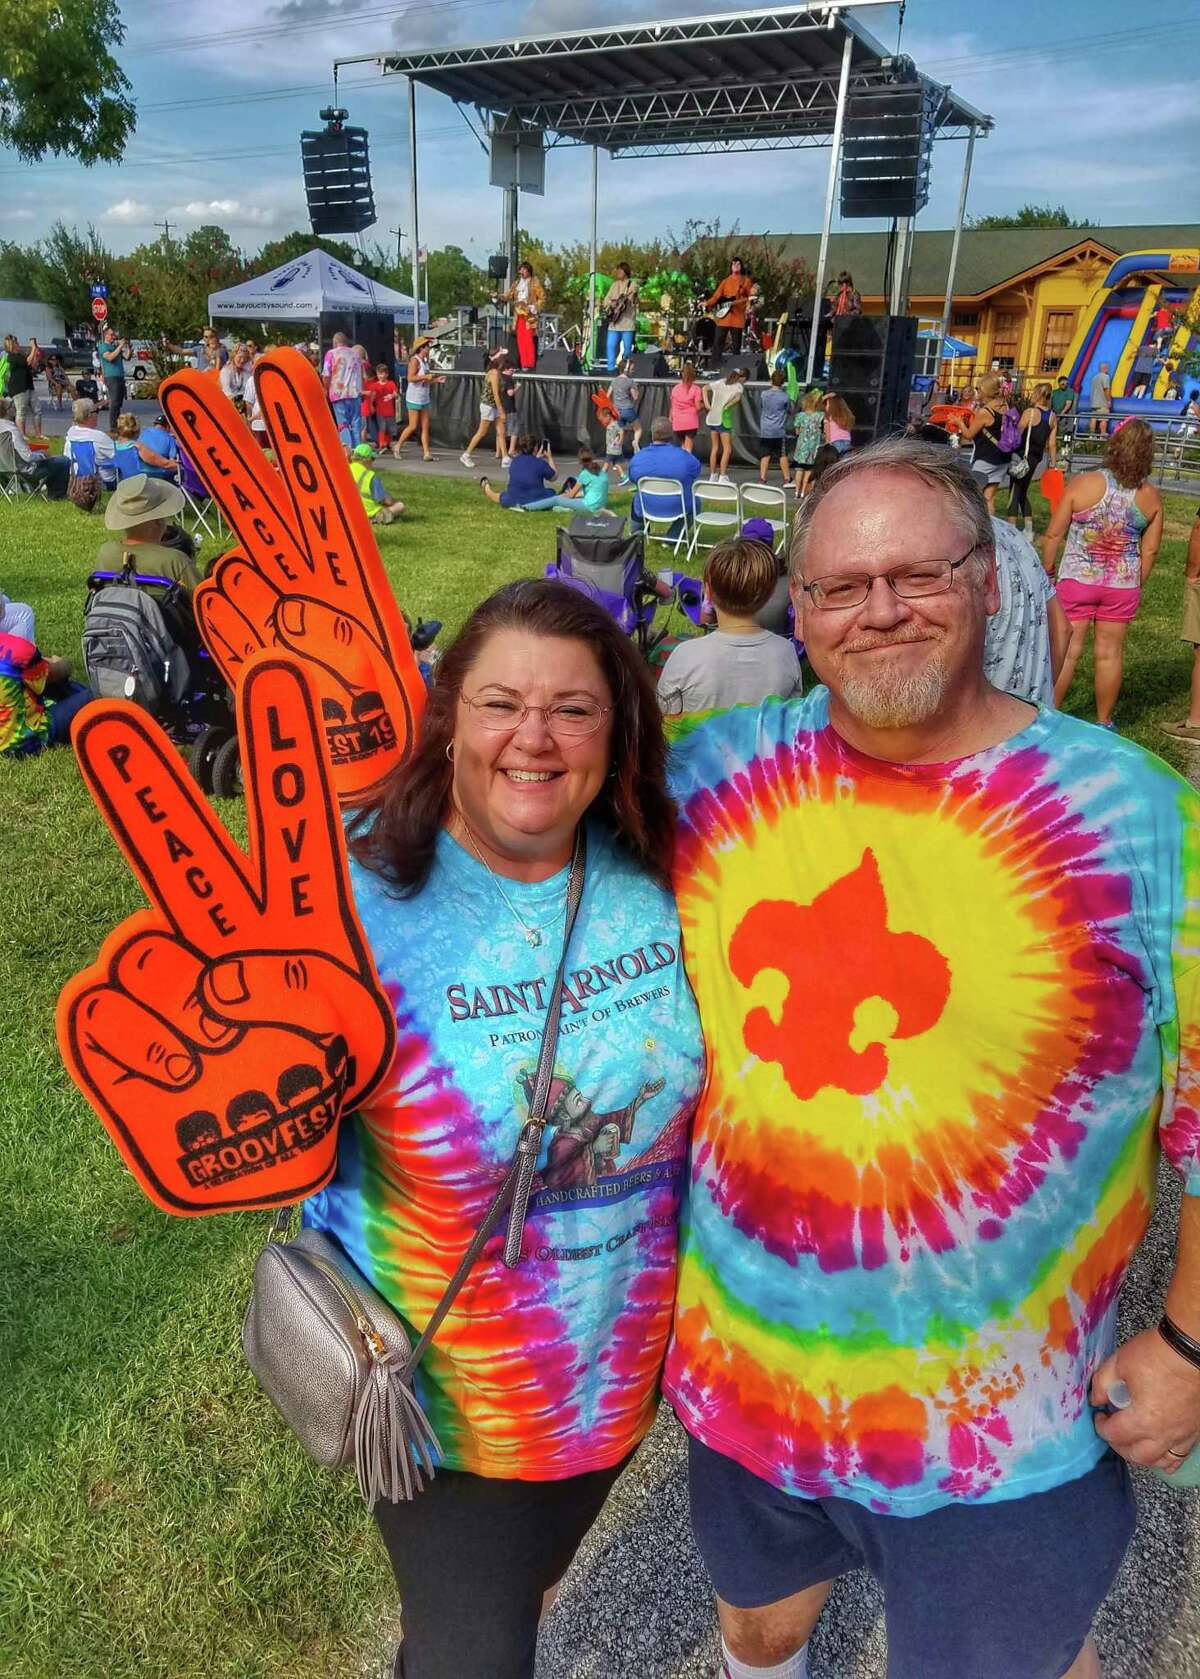 A previous music festival in Tomball. More festivals are happening in Tomball this year after more than a year of none due to the pandemic.